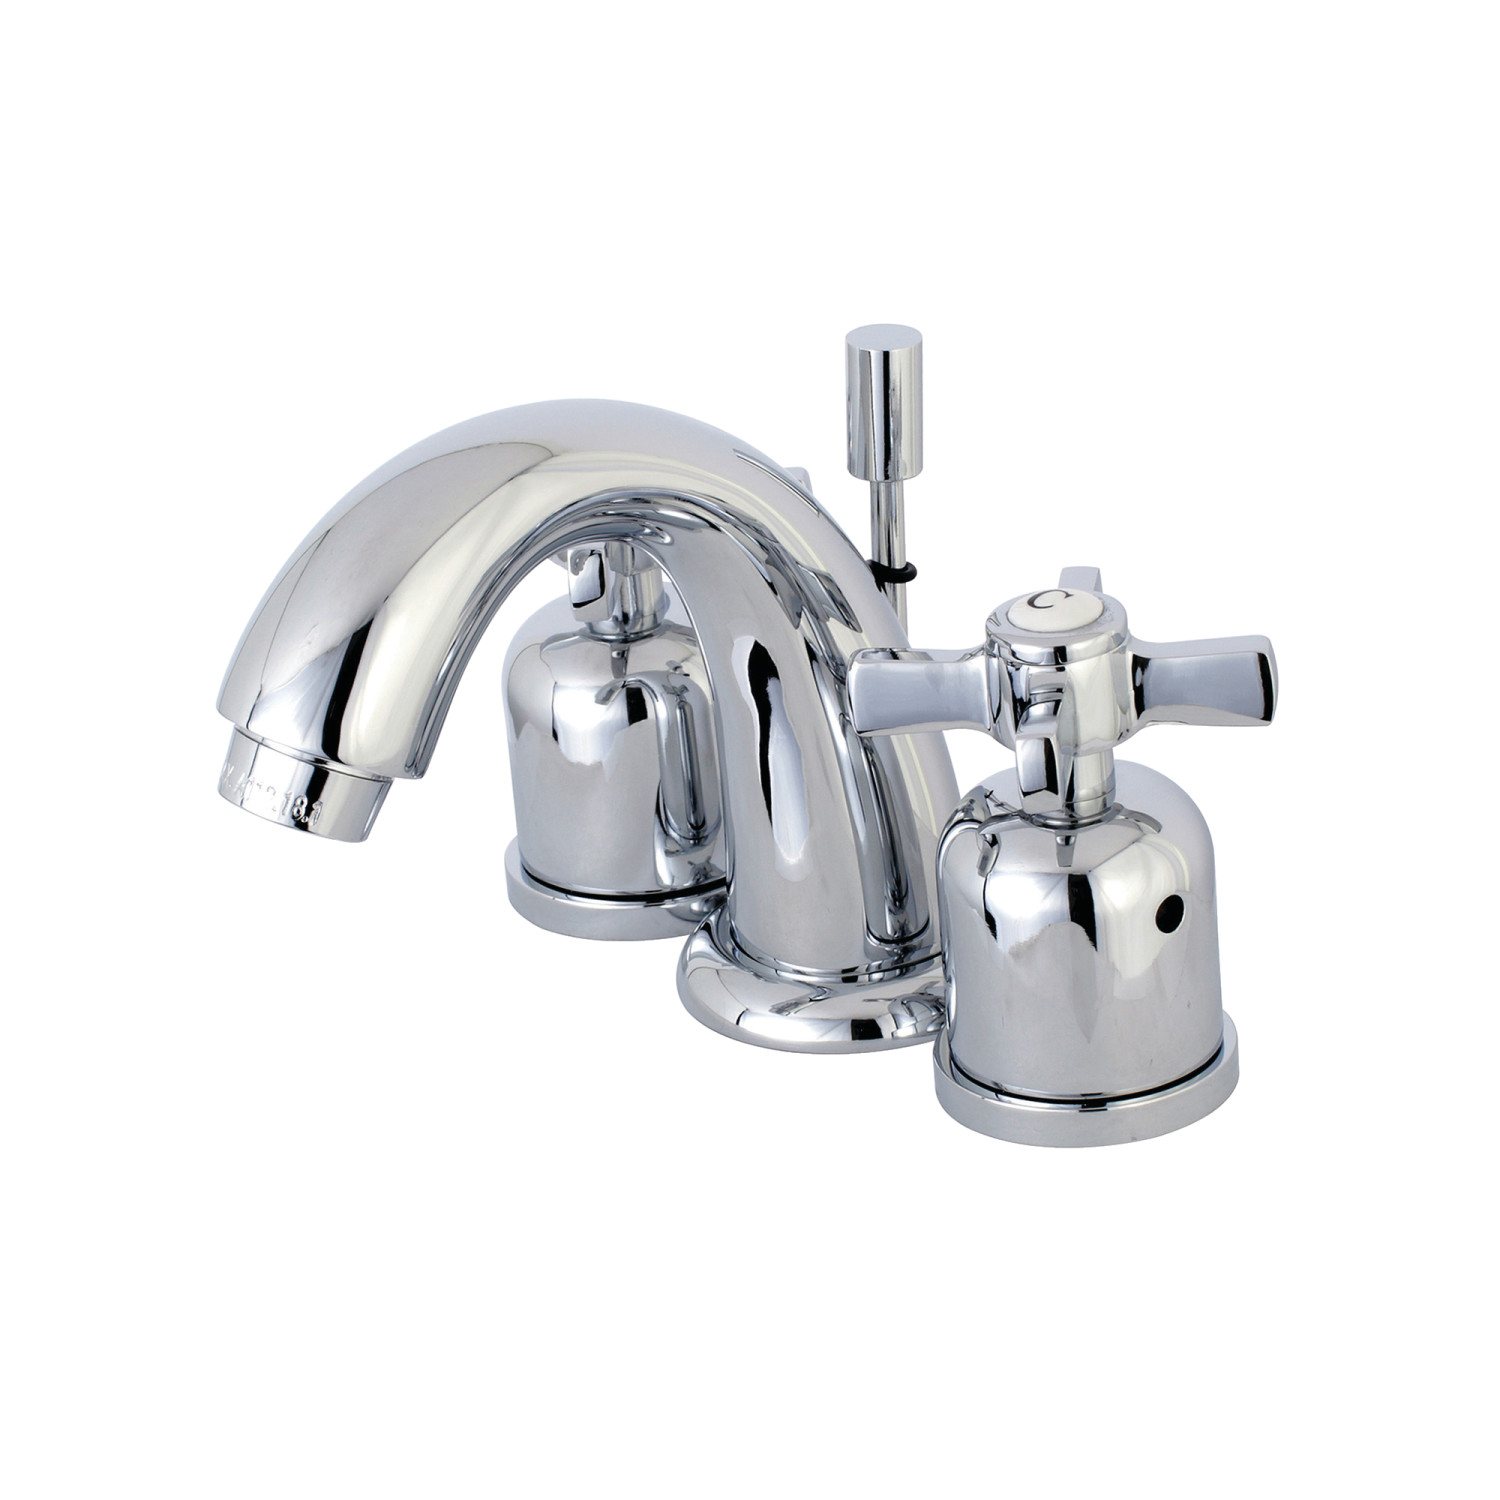 Modern Two-Handle 3-Hole Deck Mounted Widespread Bathroom Faucet with Plastic Pop-Up with 4 Finish Options